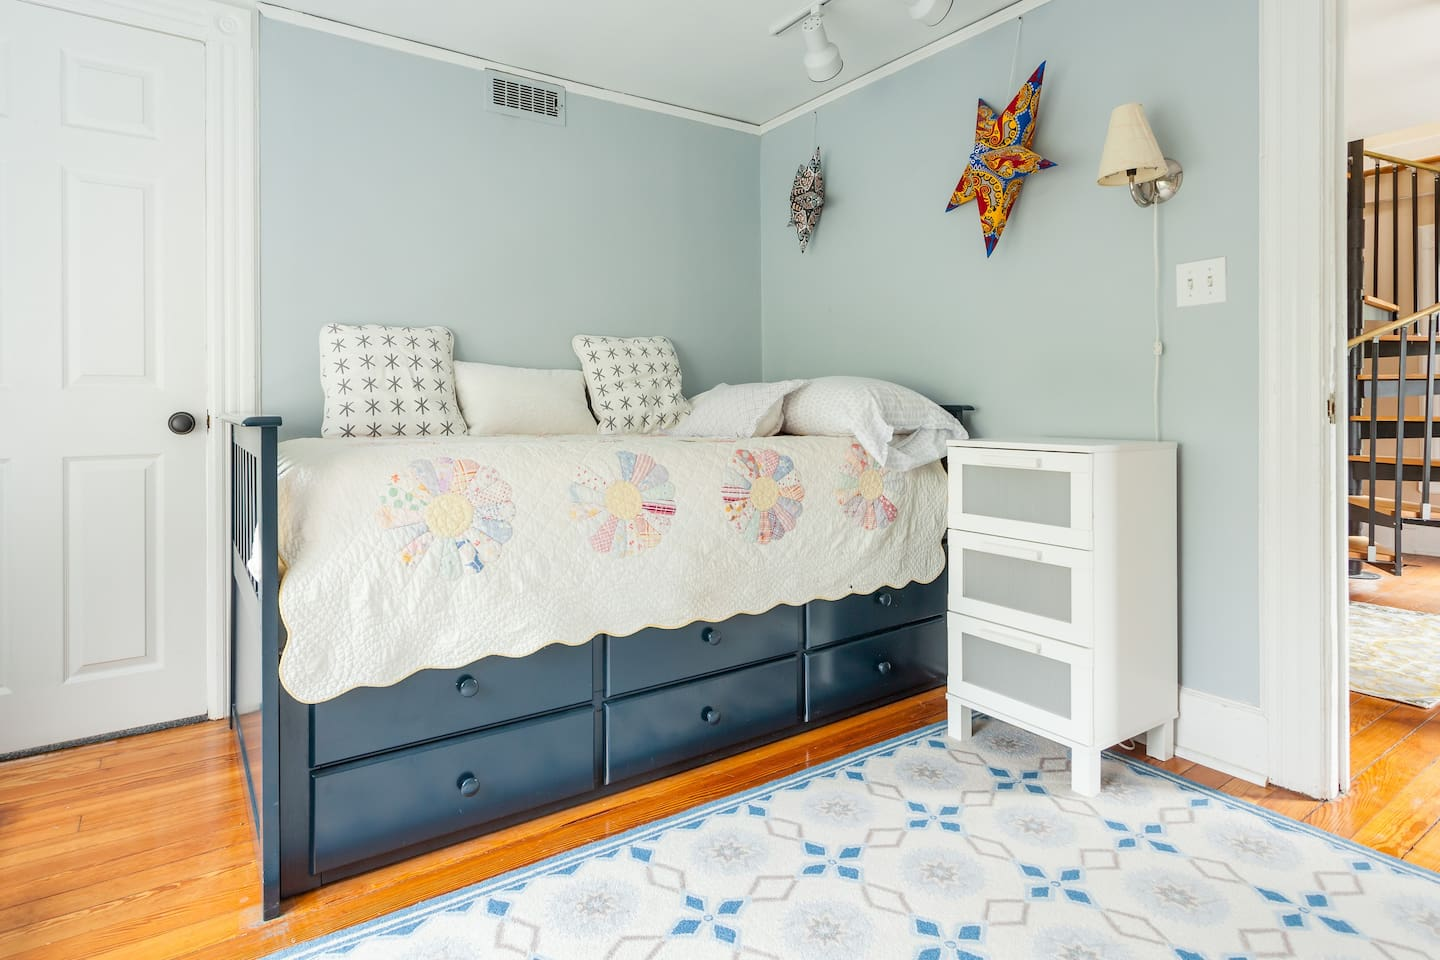 2nd bedroom on 2nd floor - Trundle bed pulls out so could sleep two in this room.